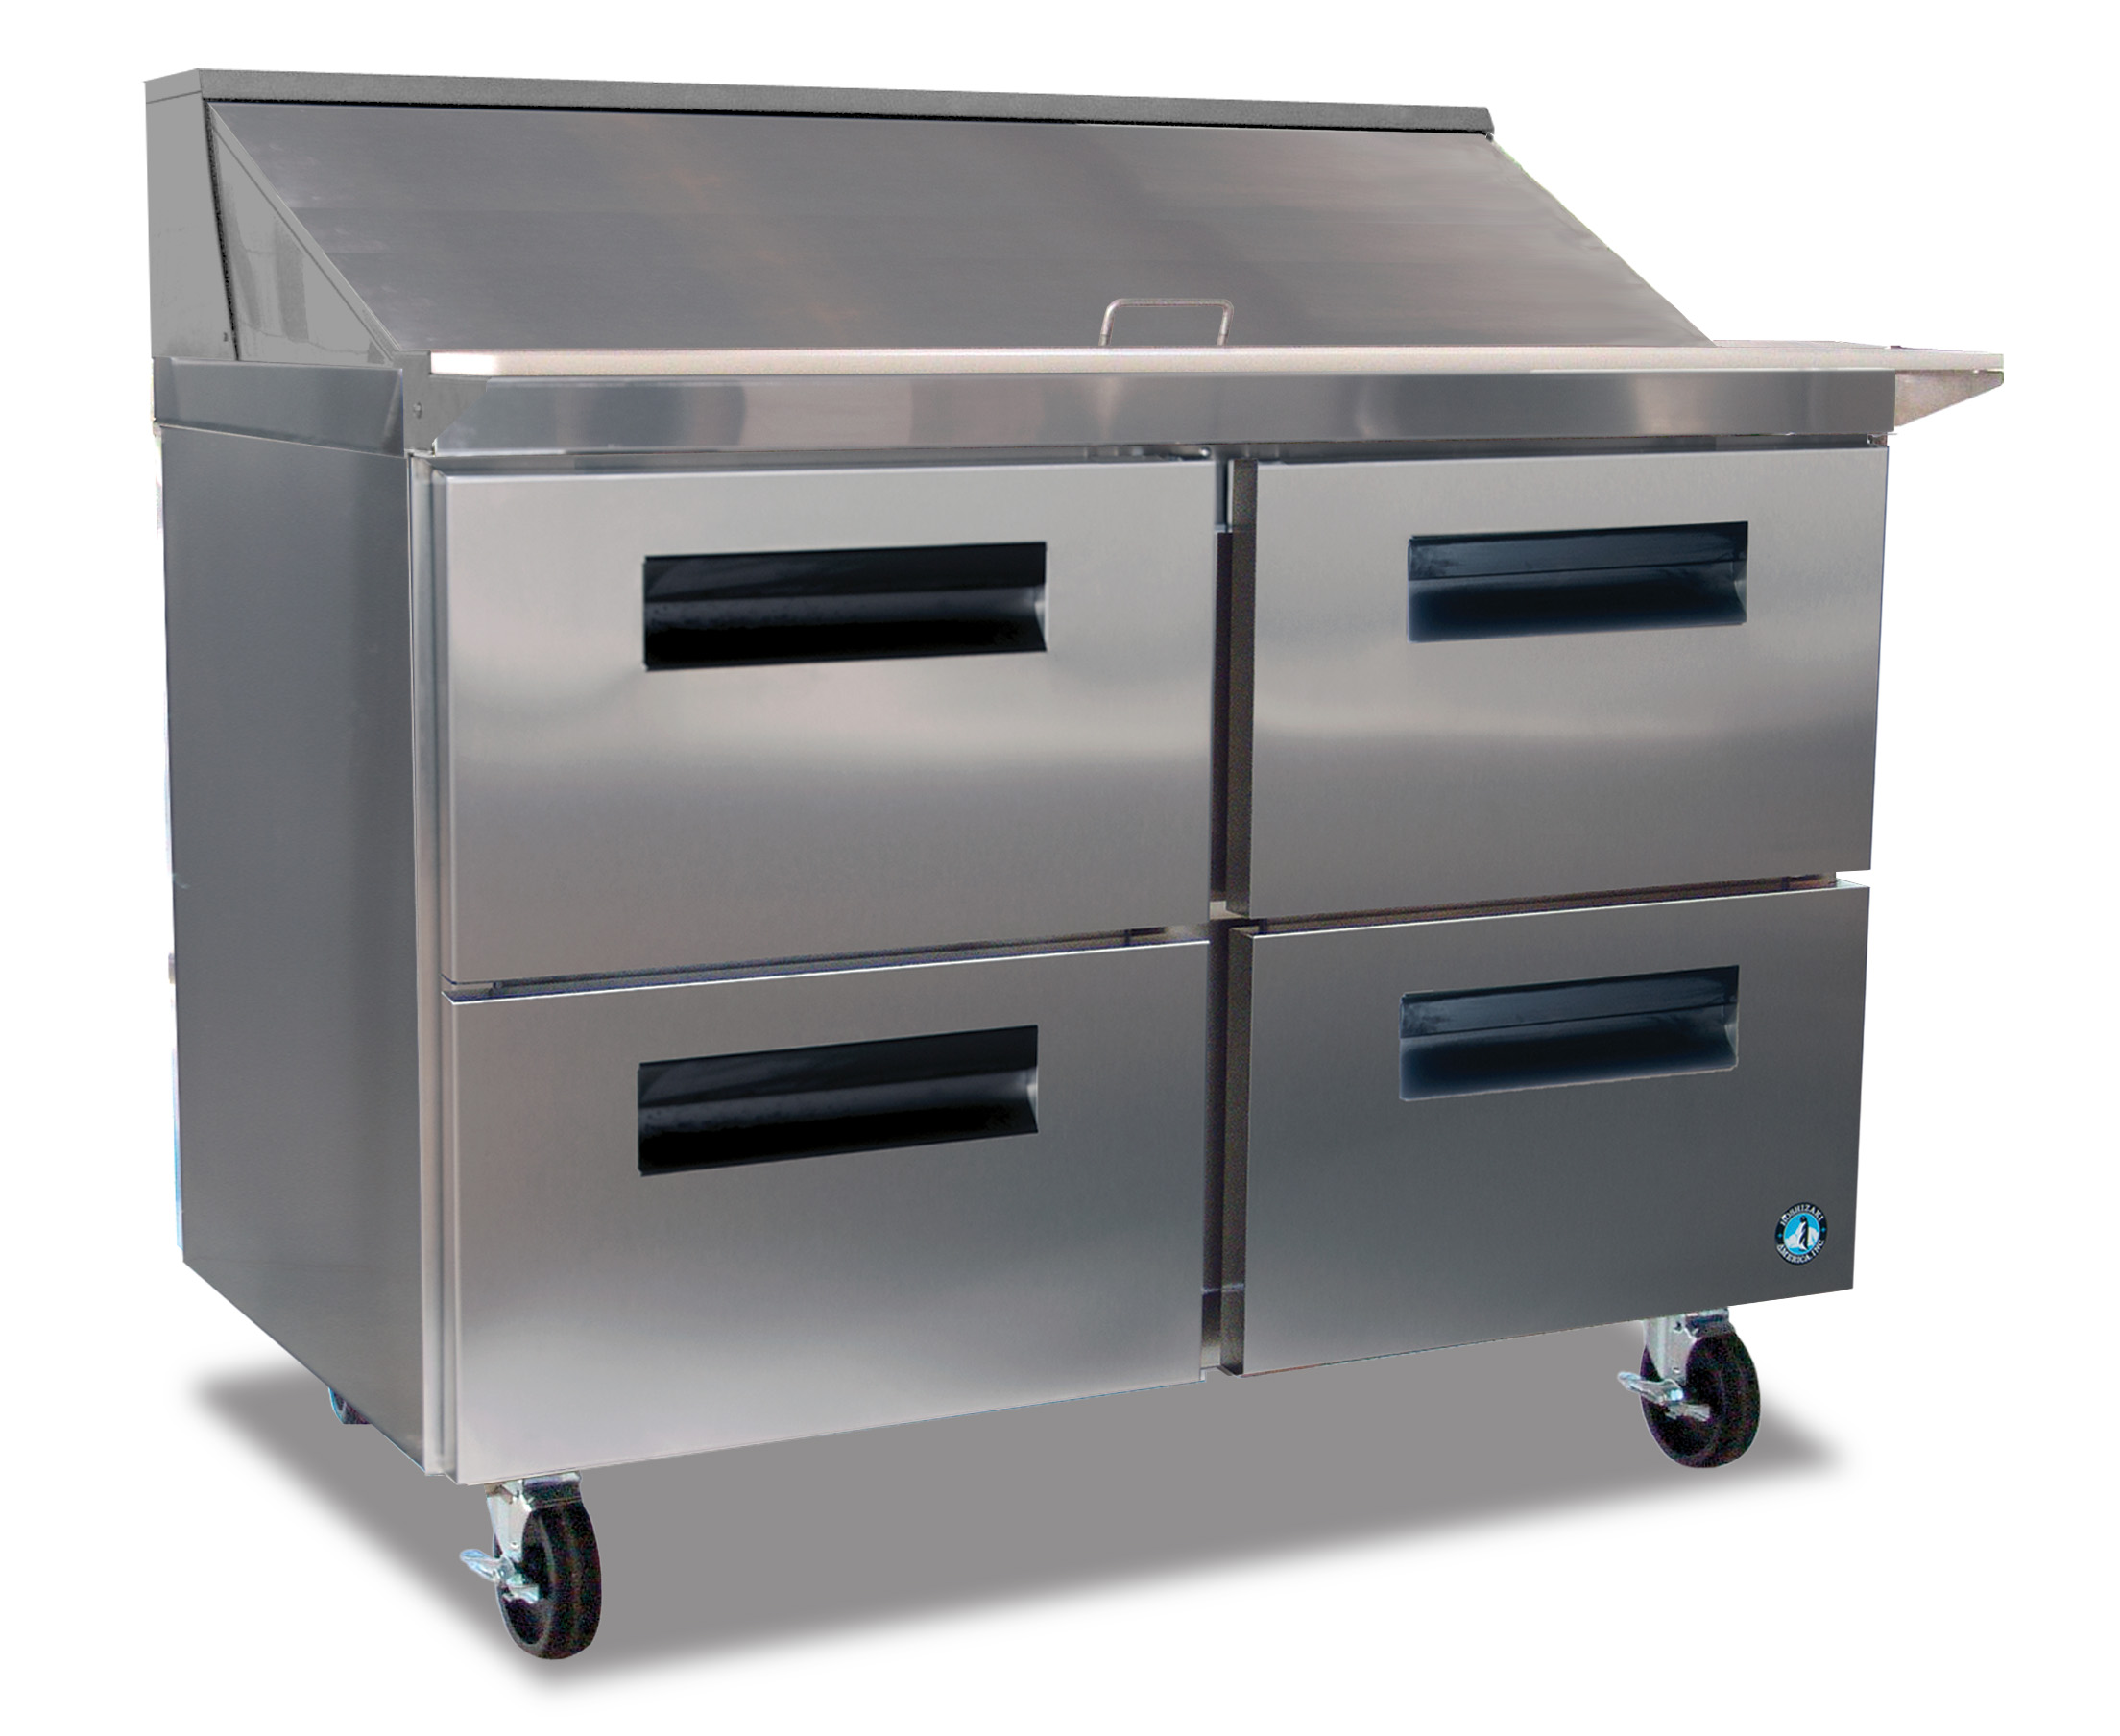 Hoshizaki CRMRD Refrigerator Two Section Sandwich Top Prep - 6 foot stainless steel prep table